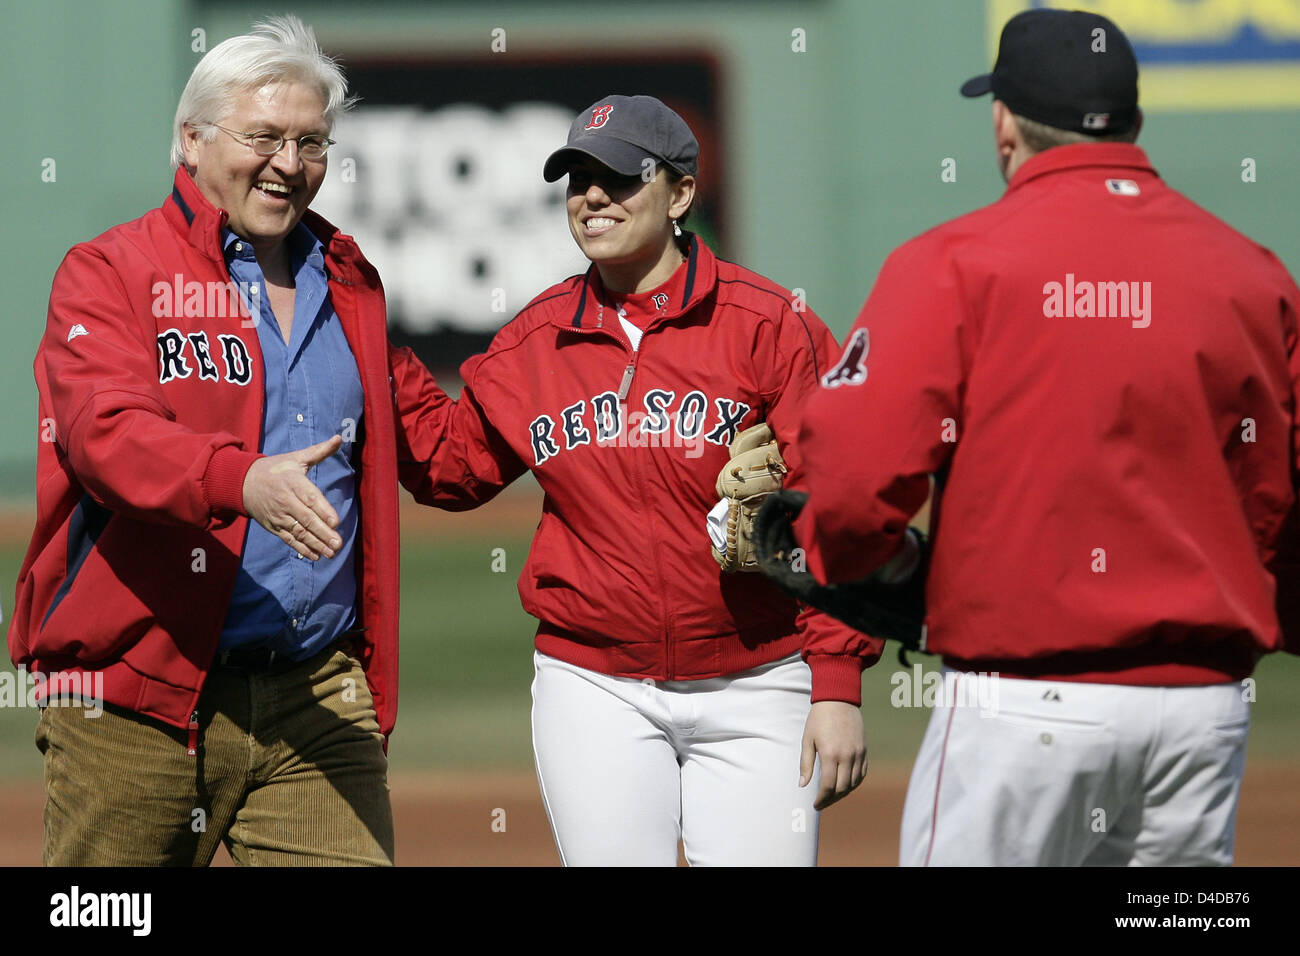 German foreign minister frank walter steinmeier l thanks the german foreign minister frank walter steinmeier l thanks the catcher prior to the baseball game boston red sox vs new york yankees at fenway park in sciox Images